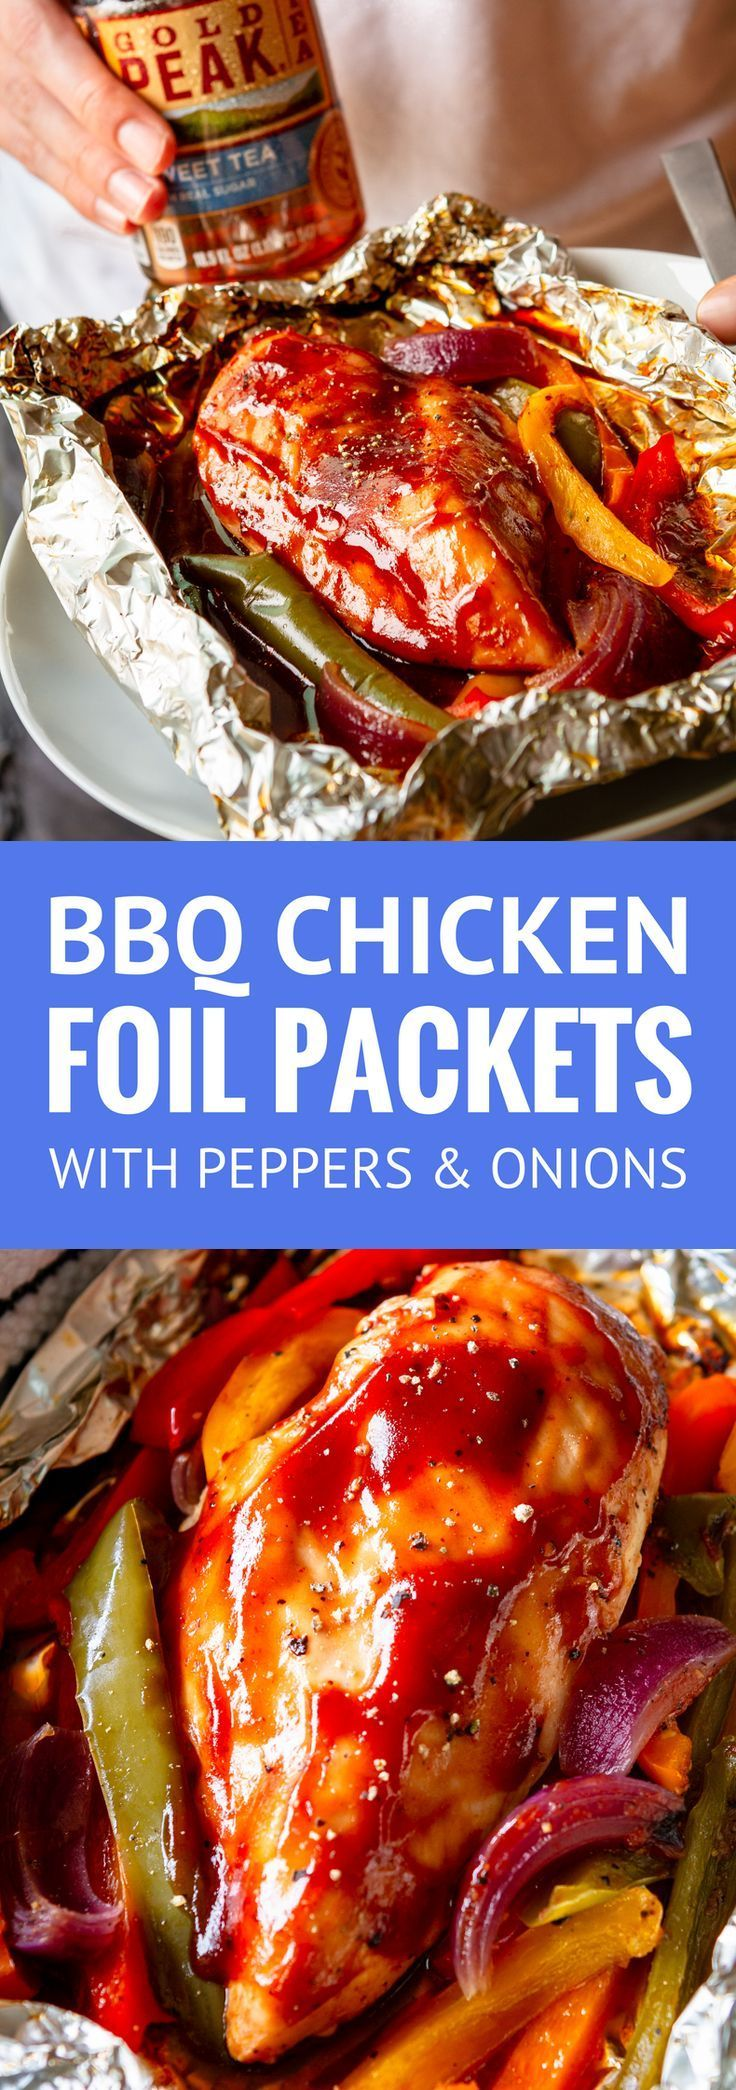 Baked Chicken Recipes Healthy Ovens